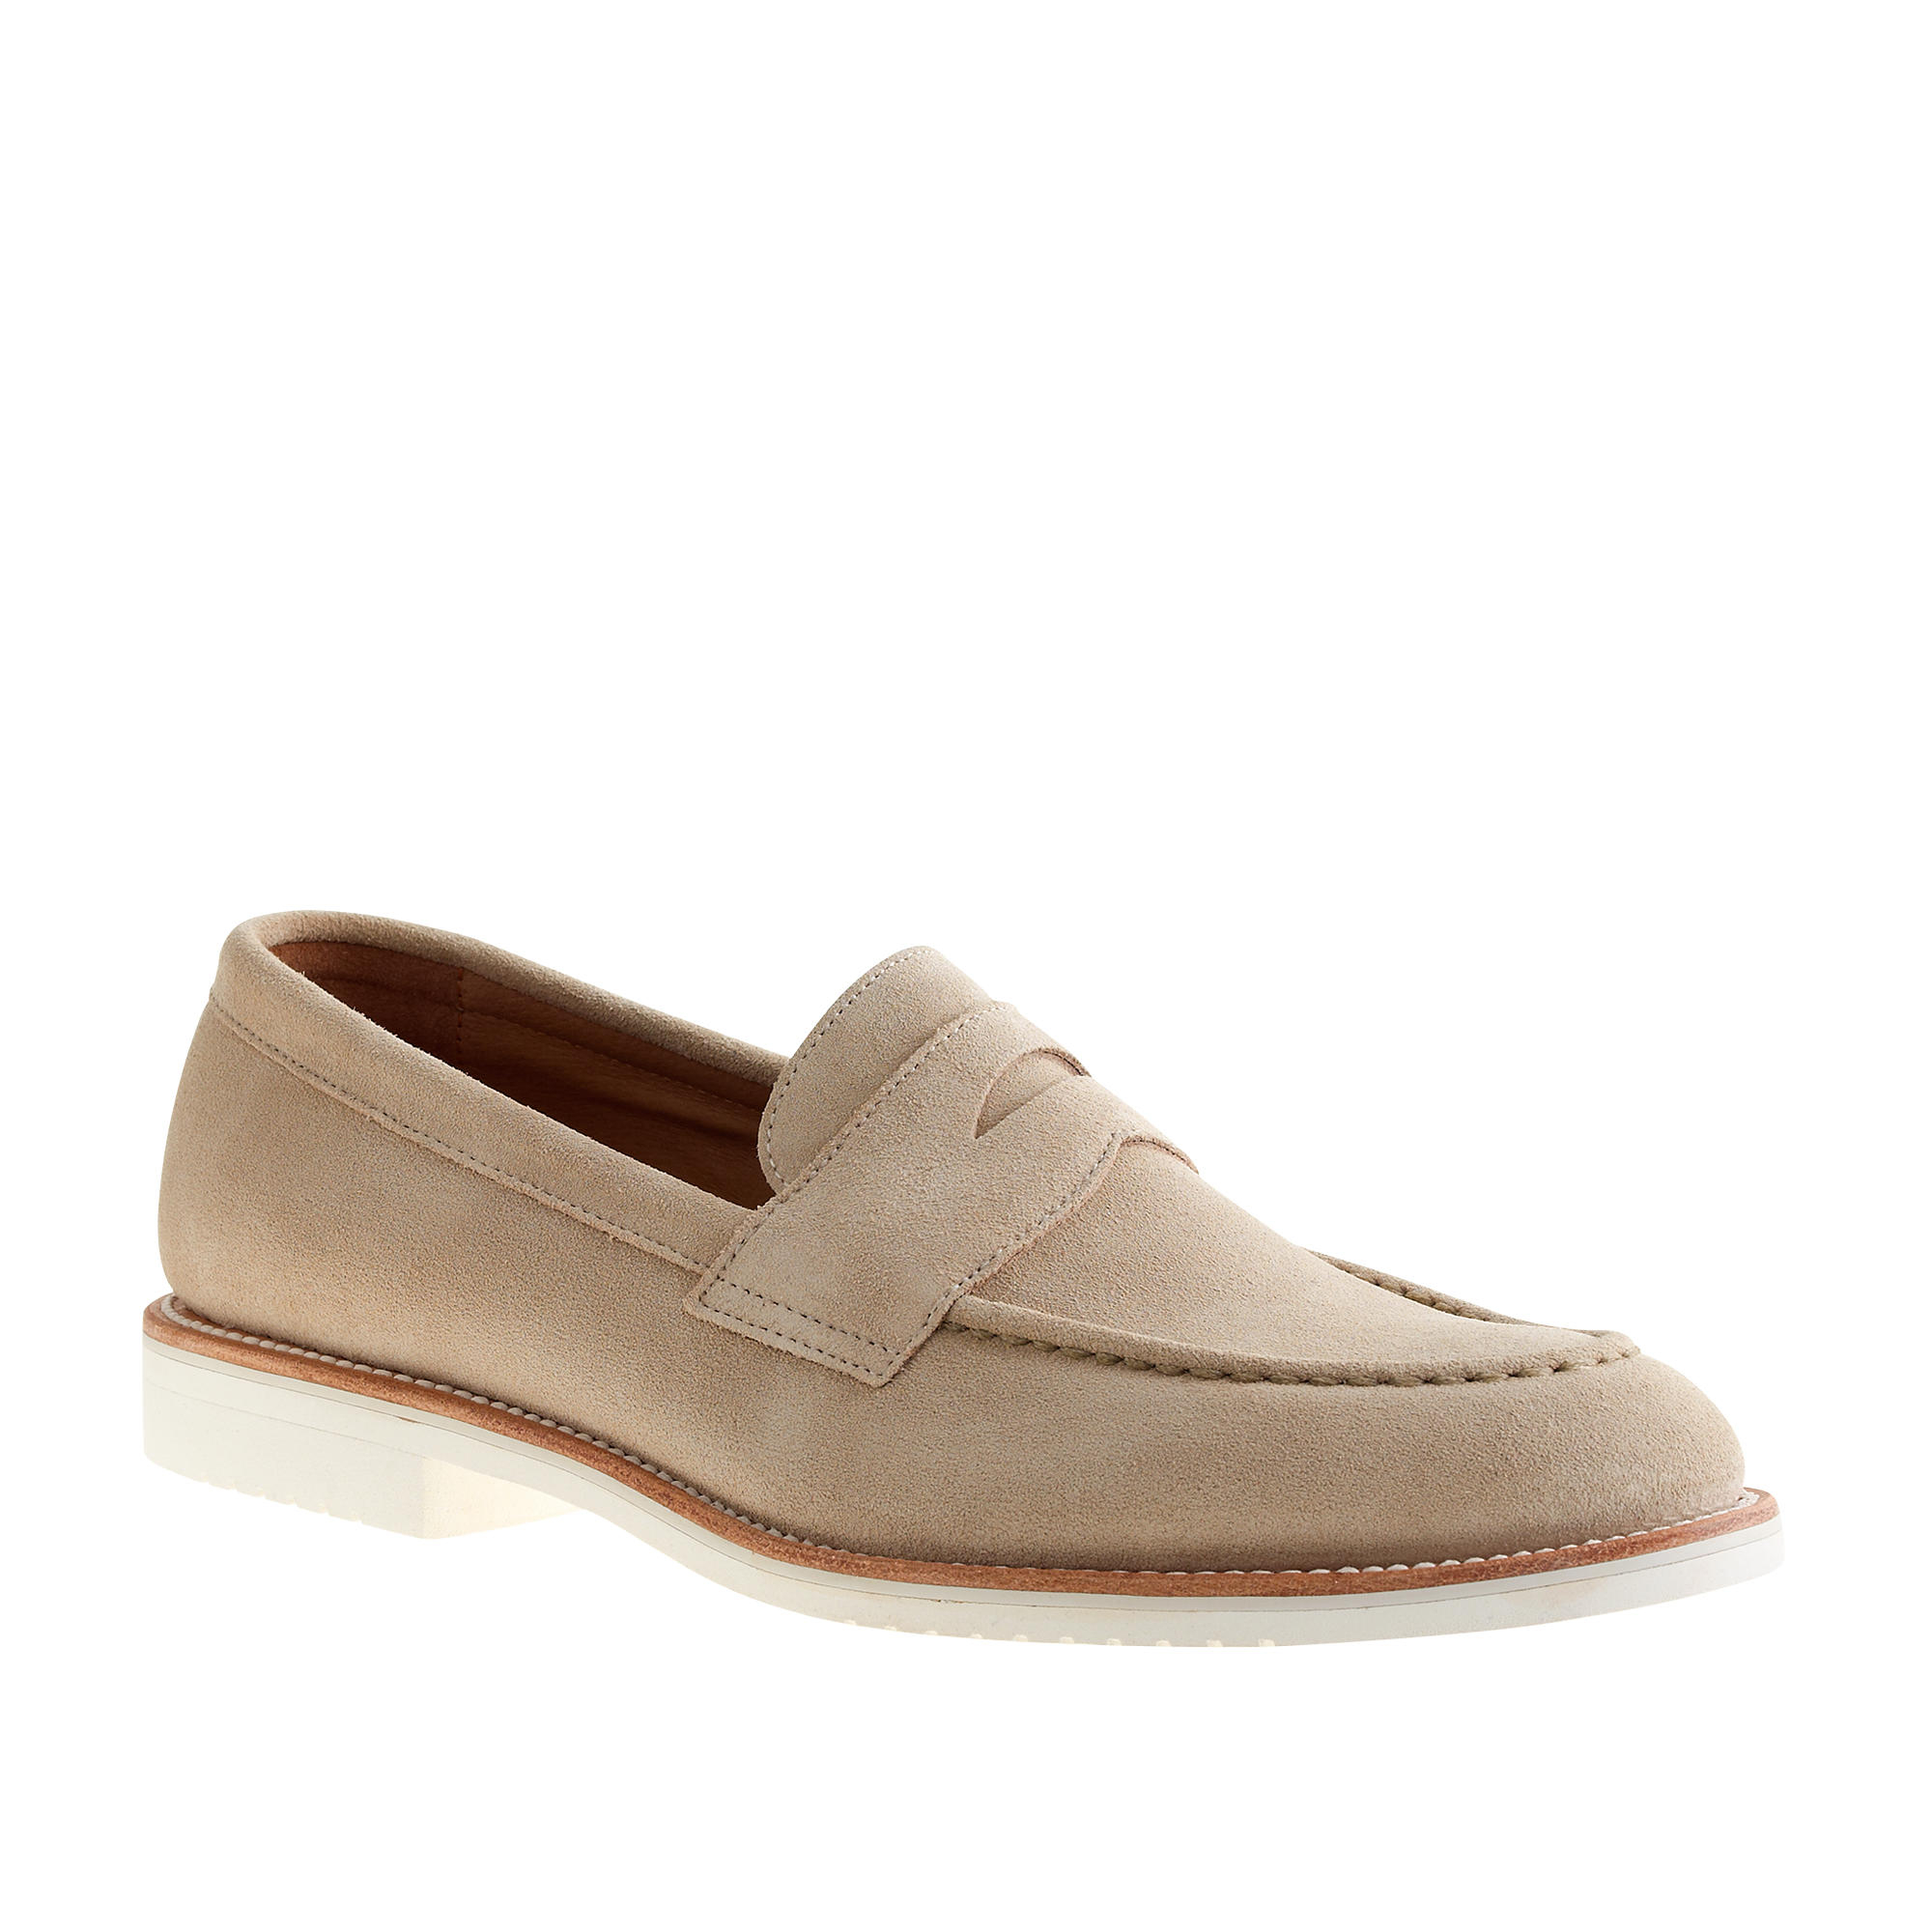 0151884a449 J.Crew Kenton Suede Penny Loafers With White Soles in Natural for ...